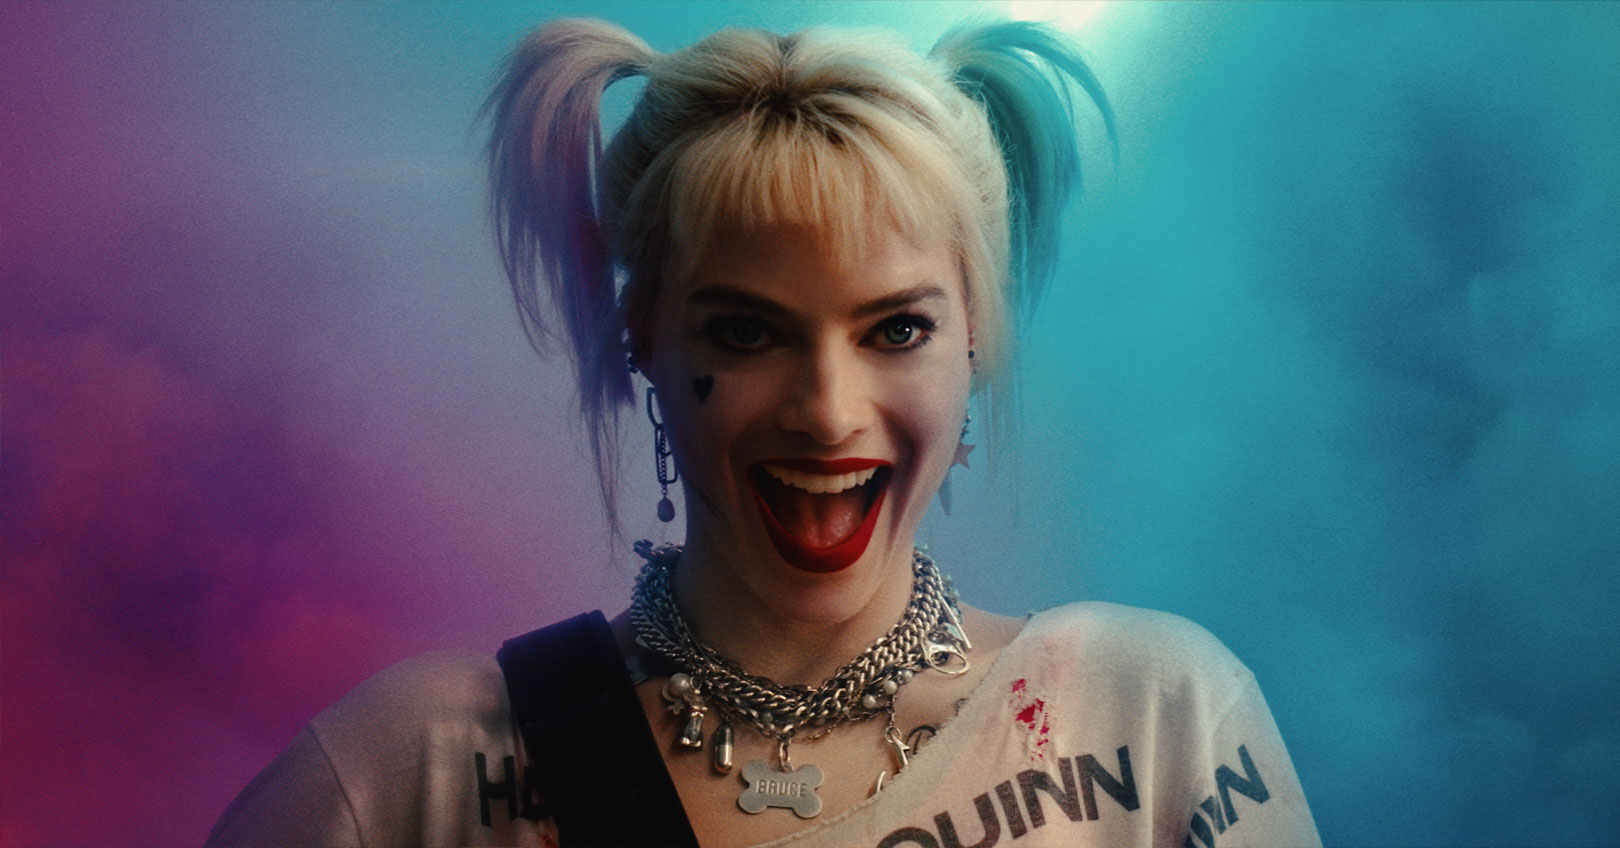 Birds of Prey (and the Fantabulous Emancipation of One Harley Quinn) - Margot Robbie